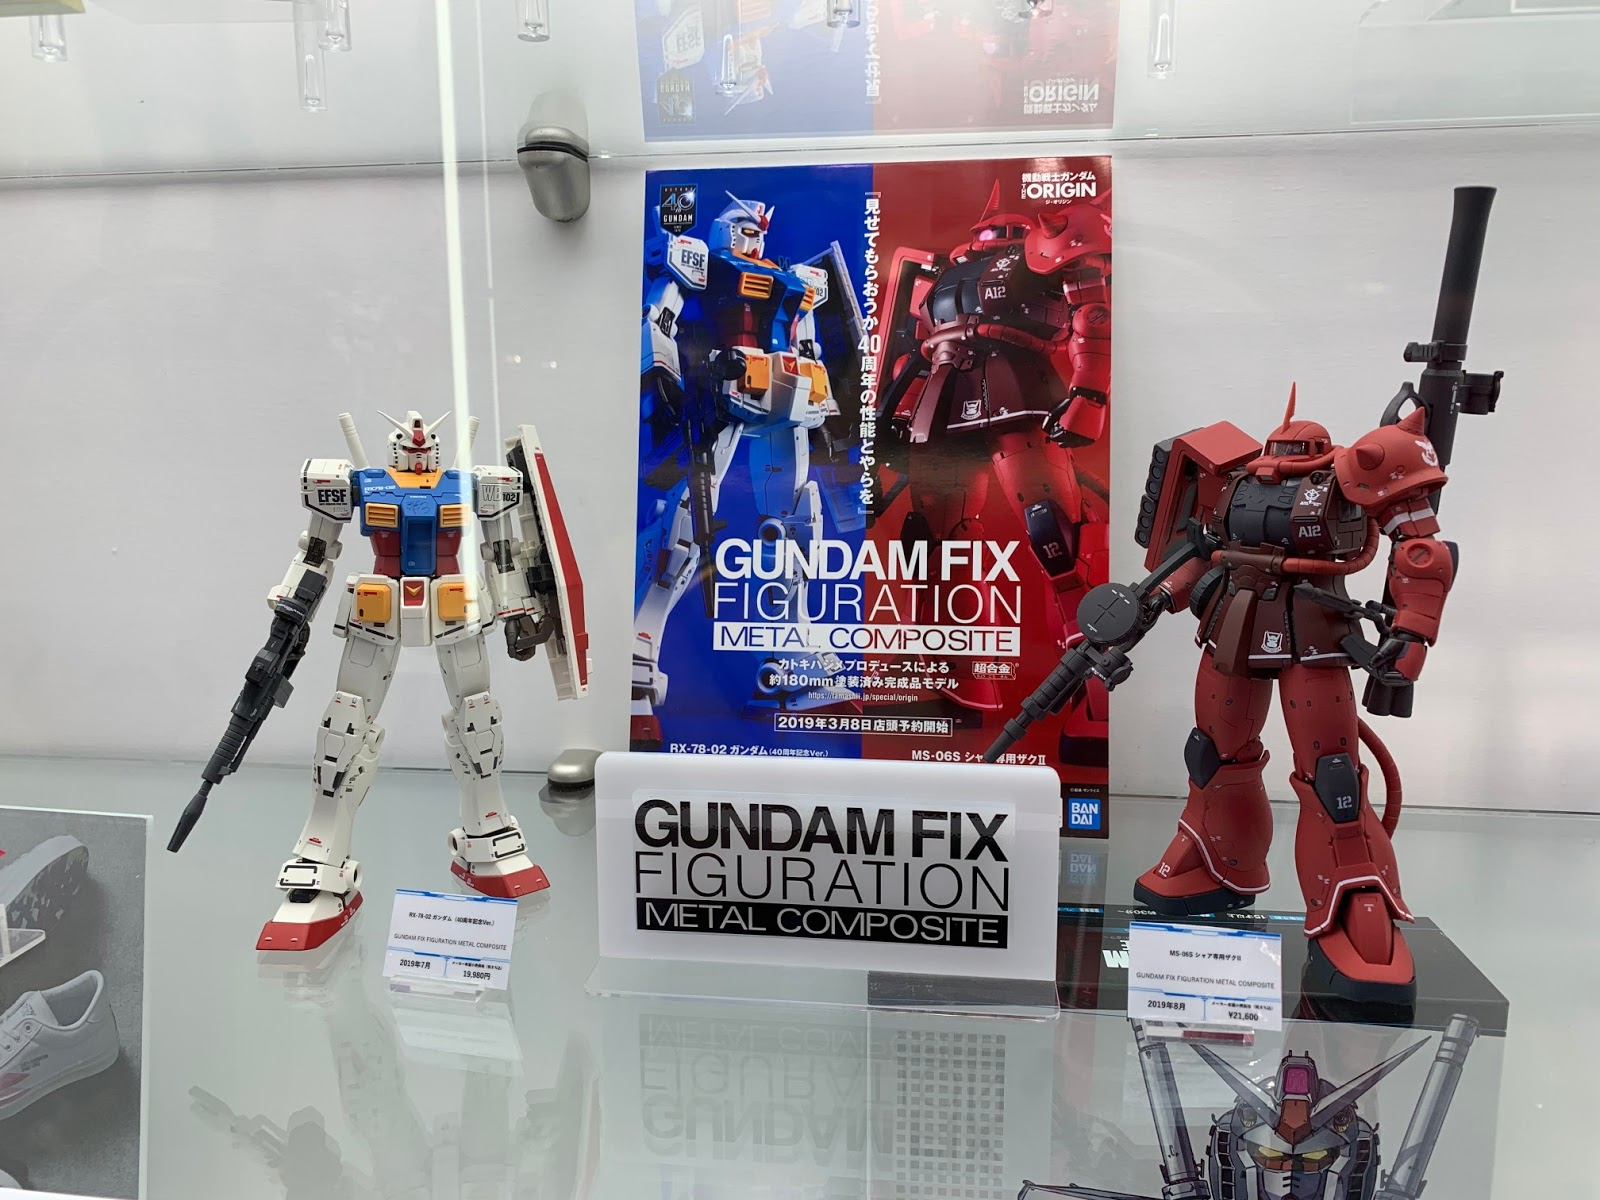 Anime Japan 2019 Image gallery by Clement Element - Gundam Kits